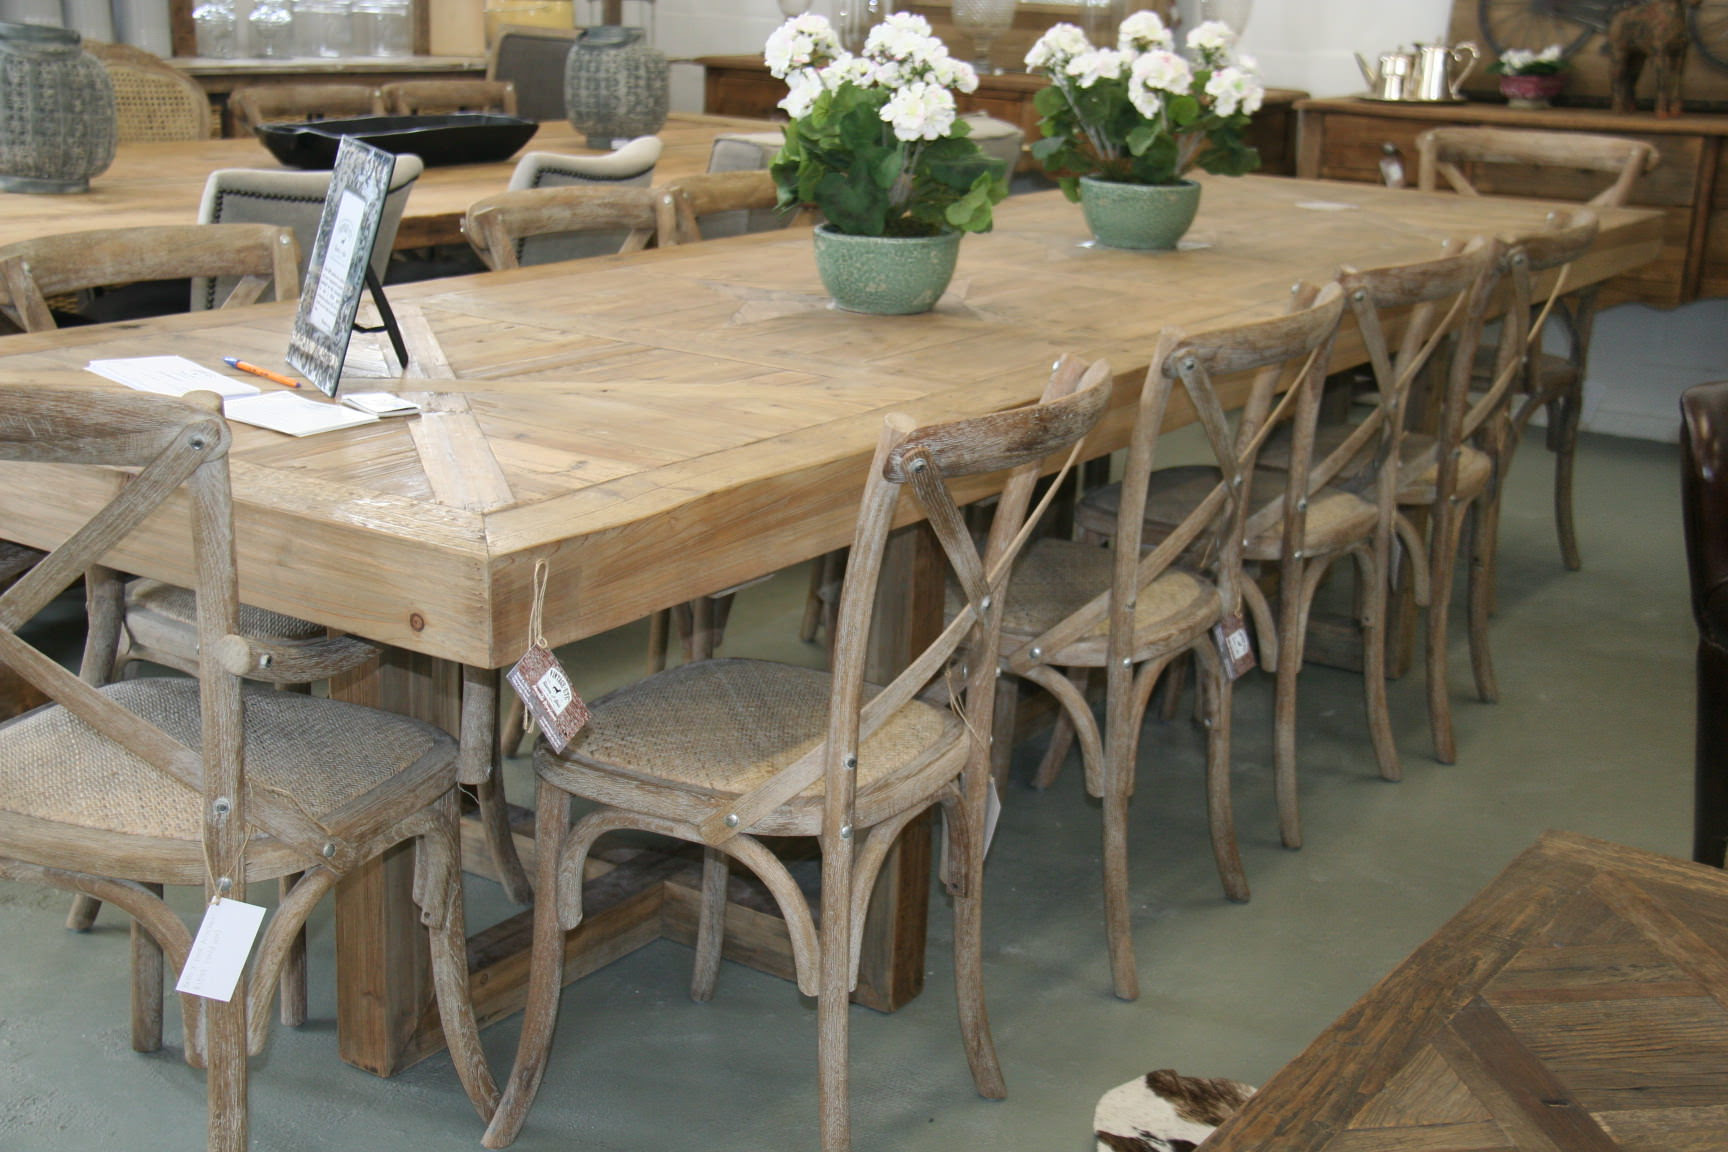 Dining Room Table Seats 12 Small, Large Dining Room Table Seats 12